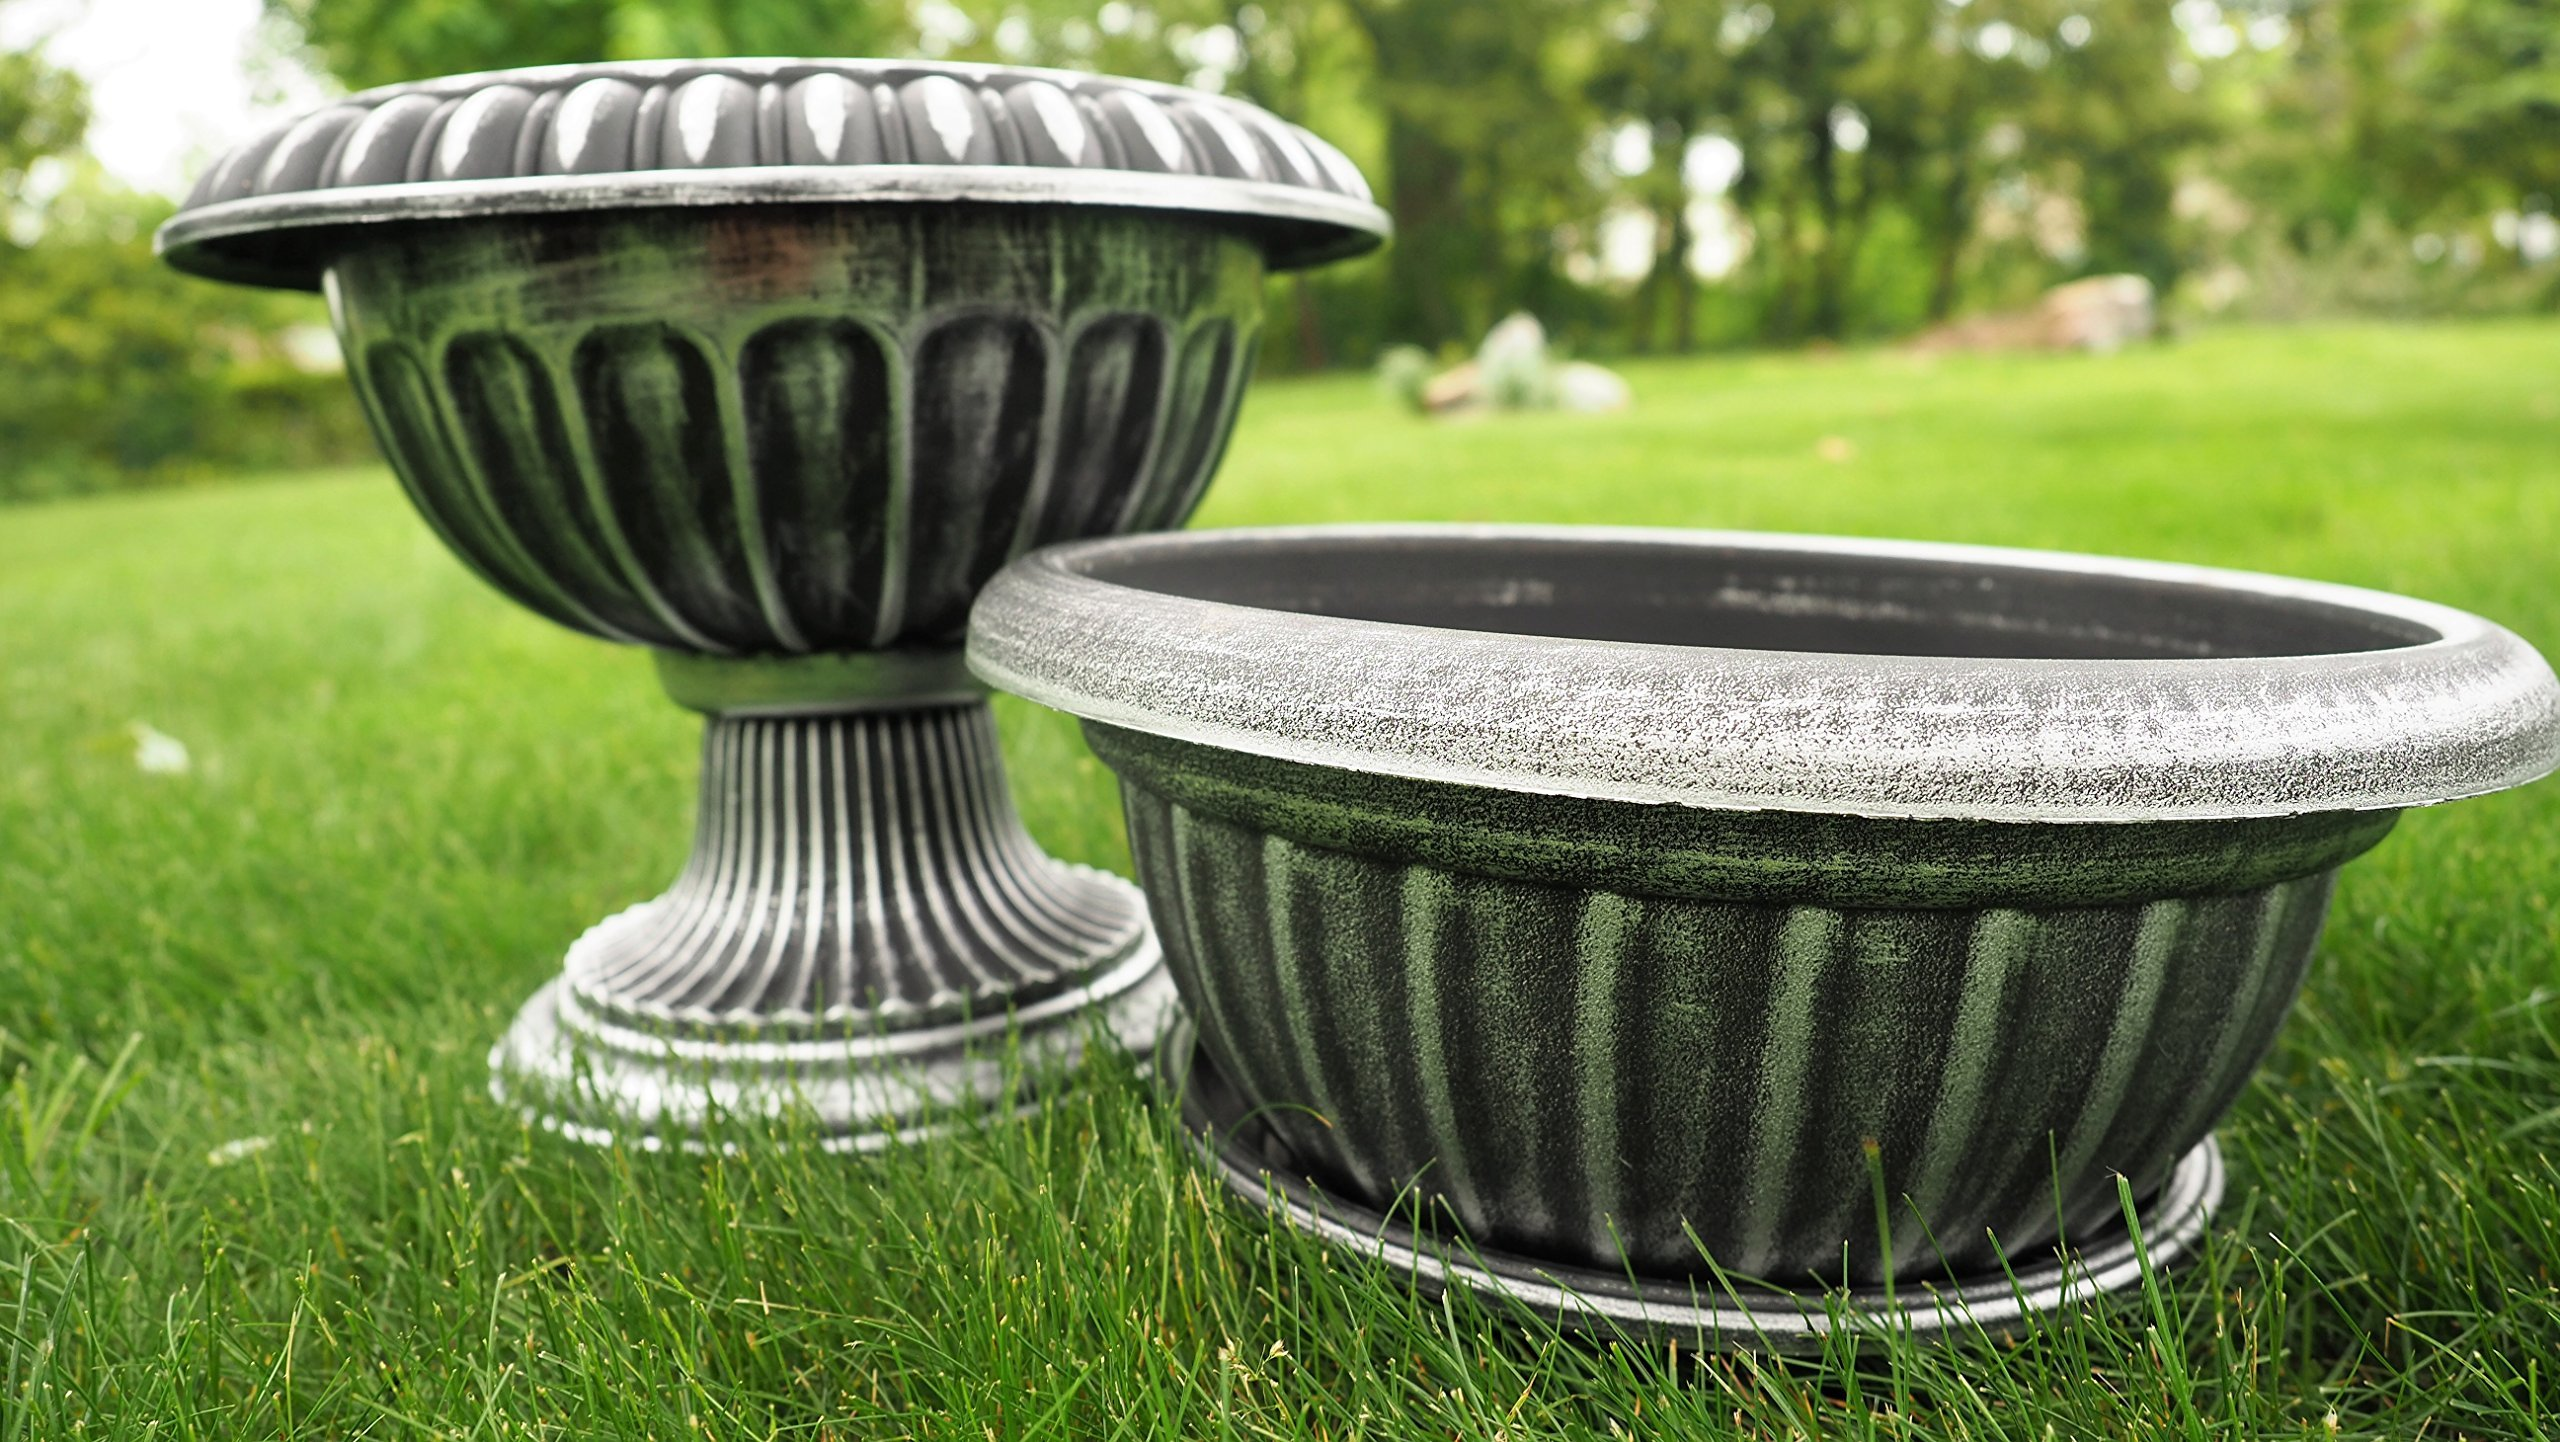 Unique 14'' Pot / Urn Rustic Look (2 Pack) Flower Seedlings Nursery with wide base Planter for Garden Patio Office Ornaments Home Decor Long Lasting Reusable Light Weight (Silver)